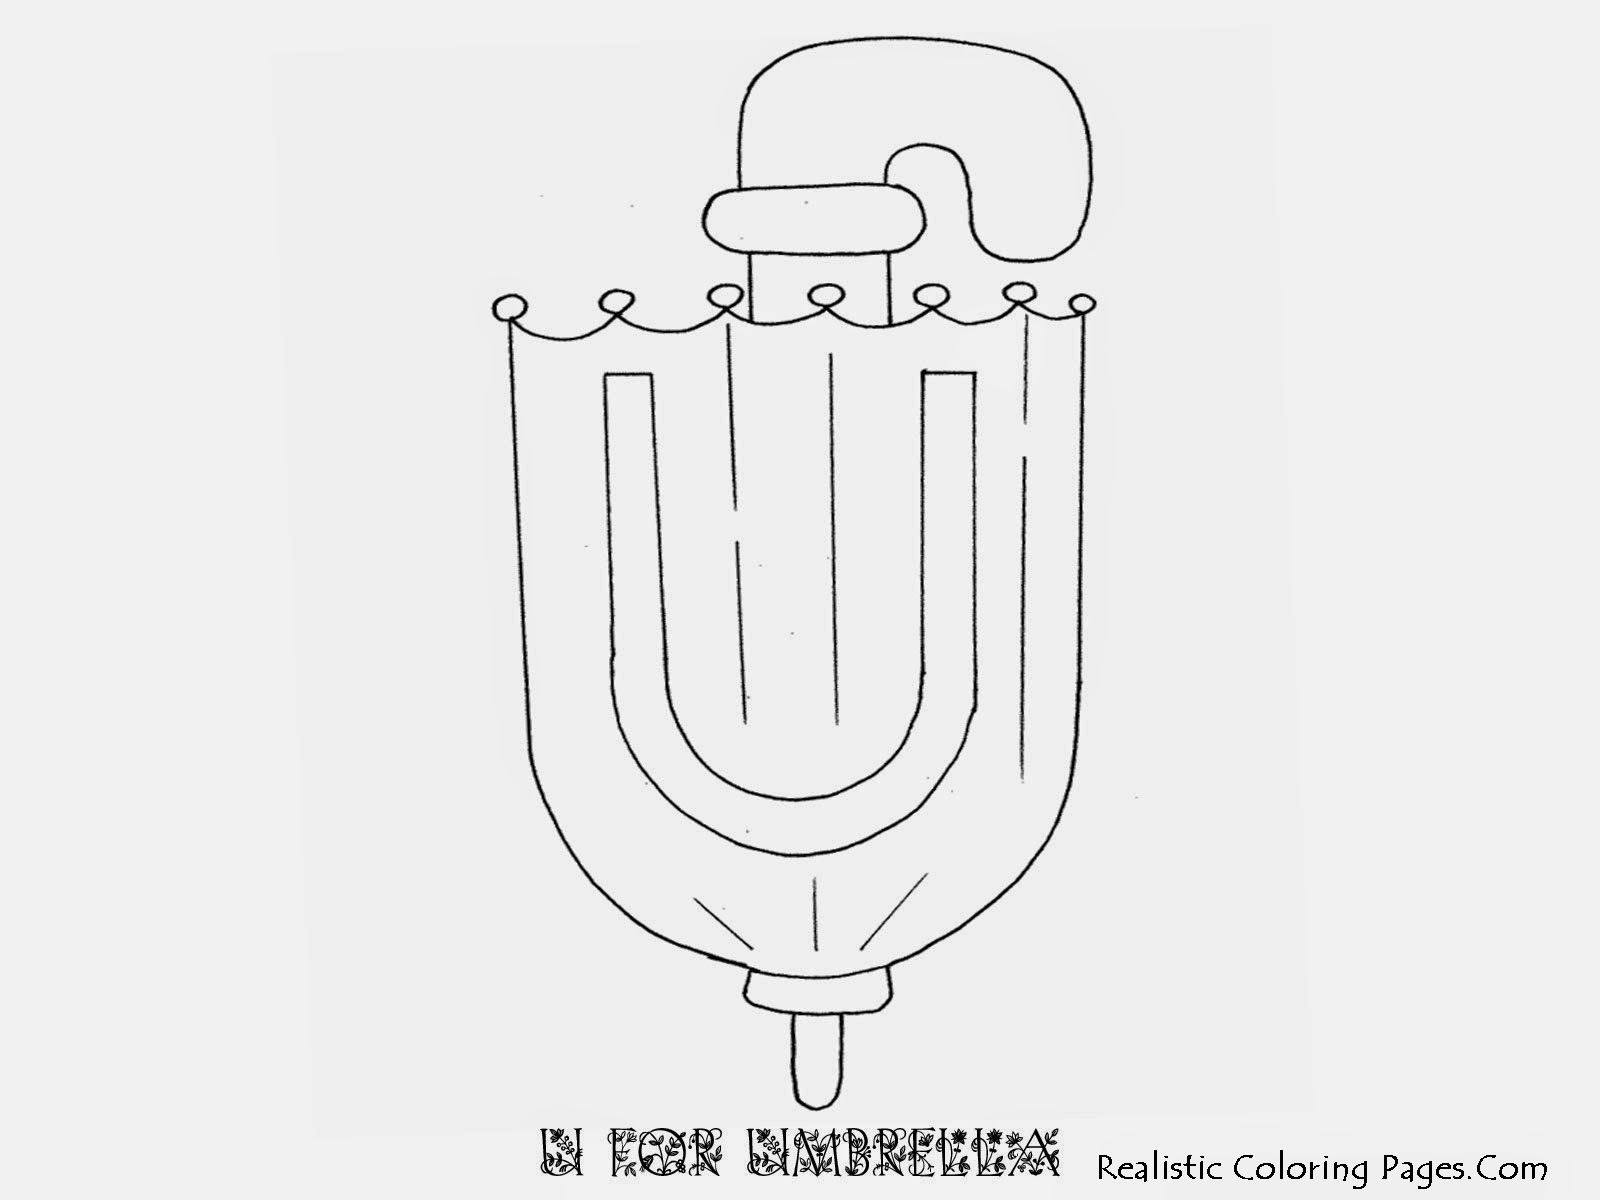 Alphabet Coloring Pages U FOR UMBRELLA